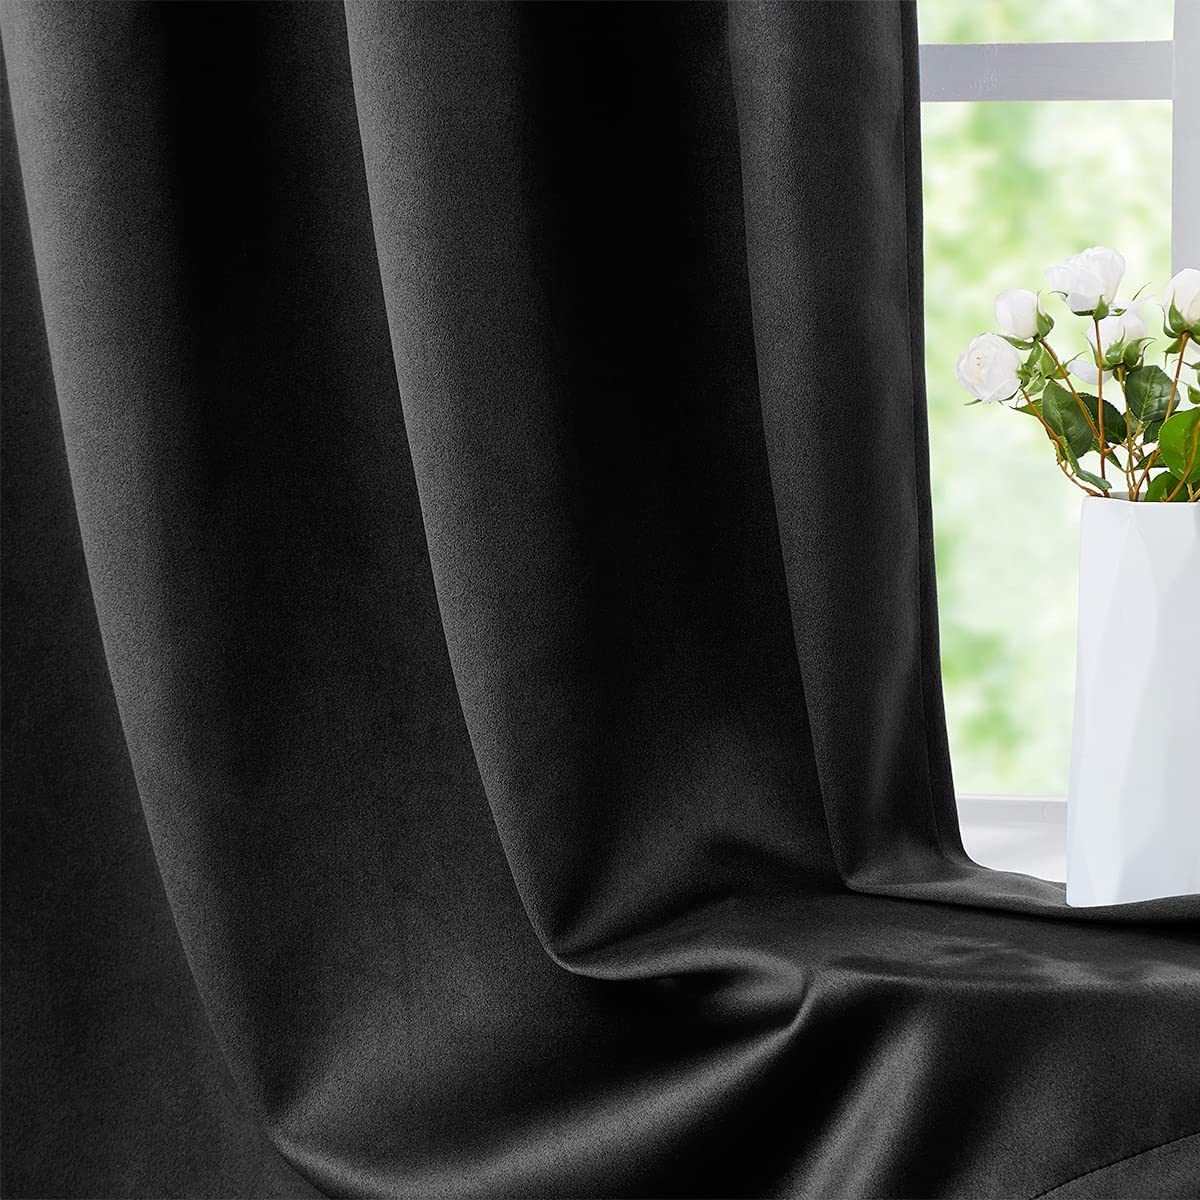 FMFUNCTEX 100% Full Blackout Curtain Black Panels Bedroom Super sale period limited for Surprise price Wi